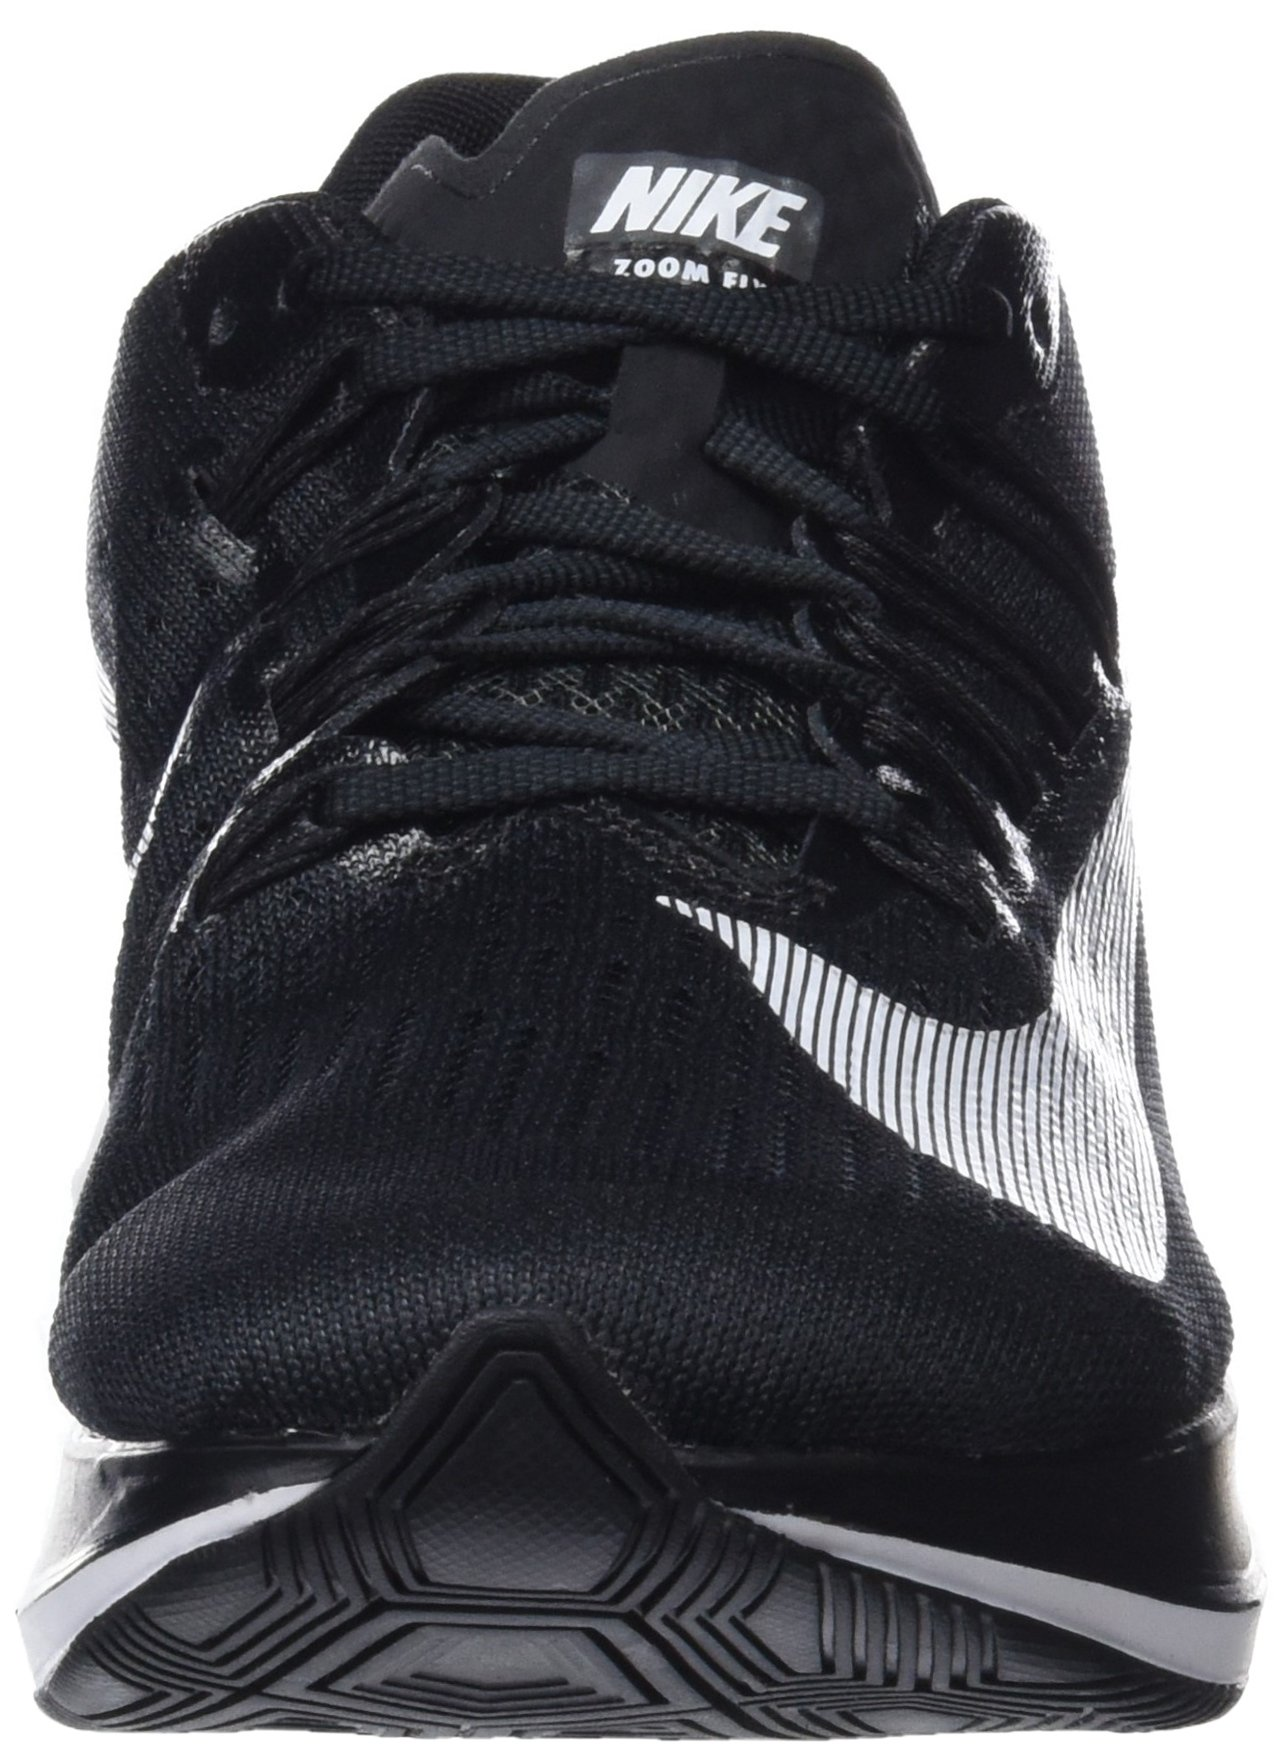 NIKE Women's WMNS Zoom Fly, Black/White, 9 M US by NIKE (Image #4)